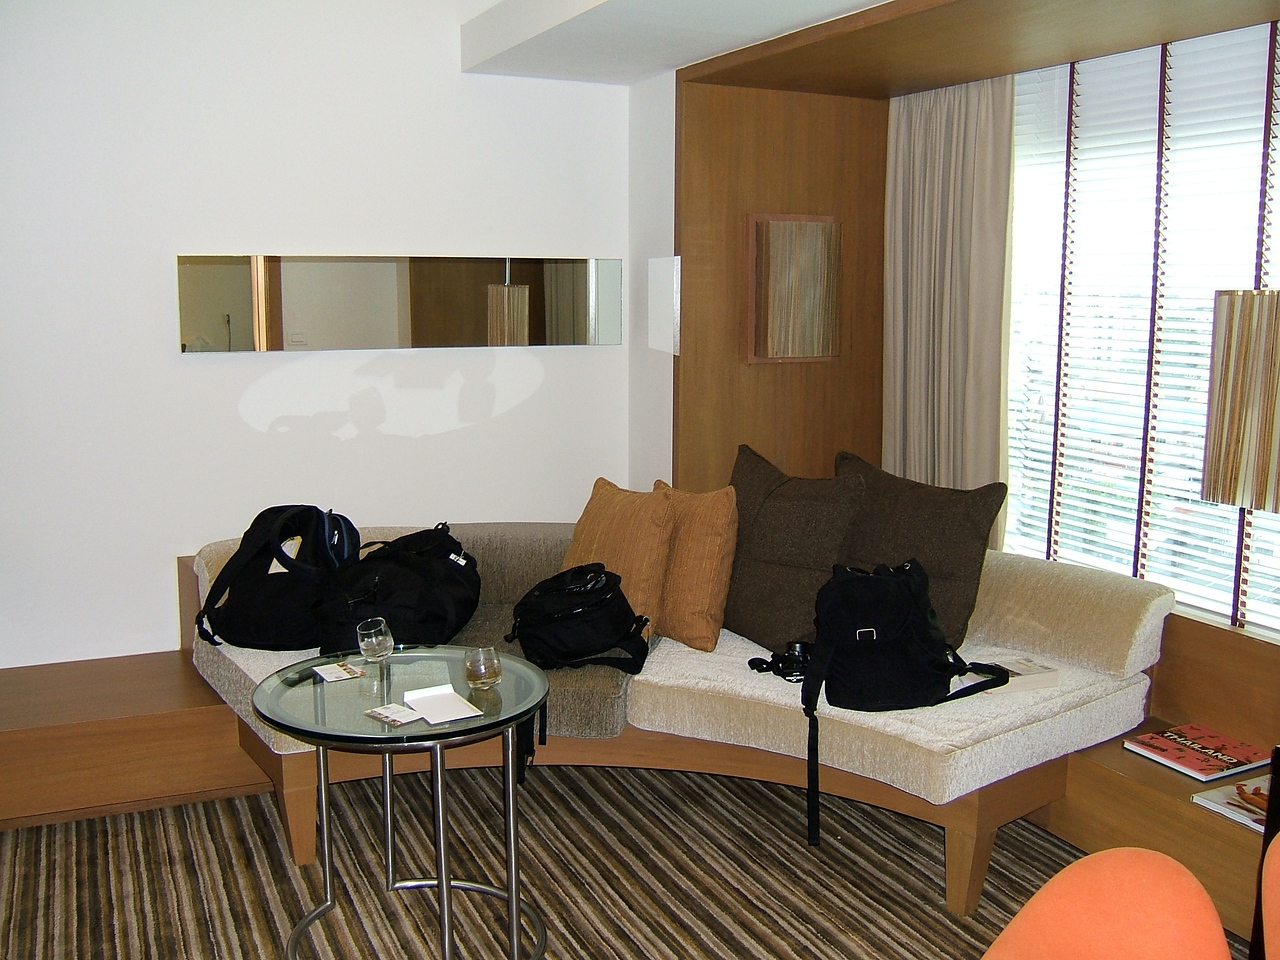 Each room also had a separate living area.